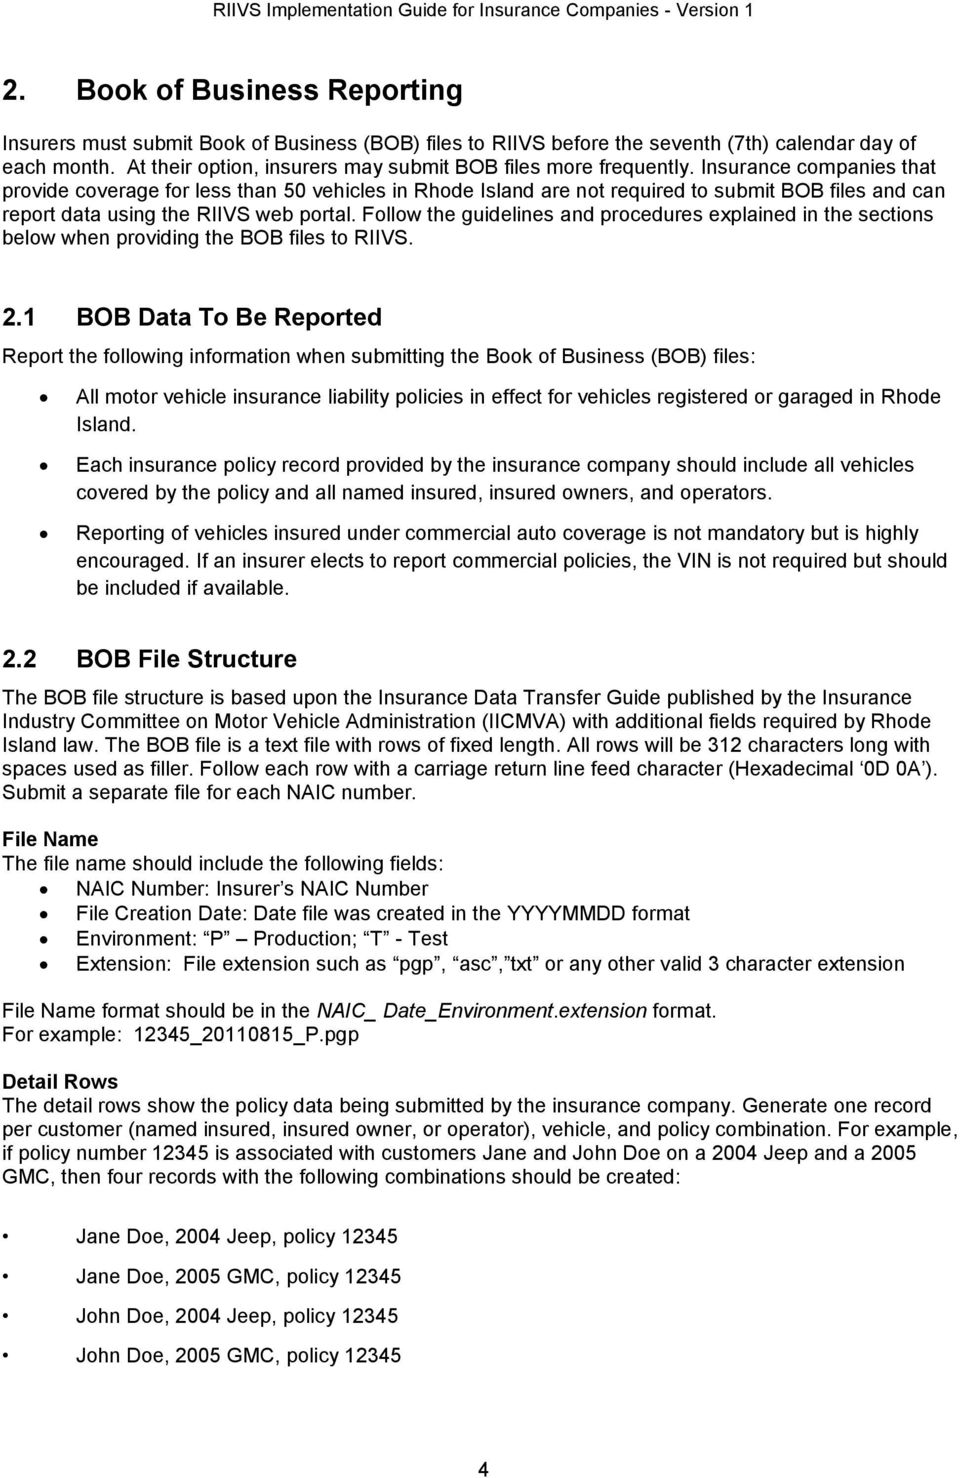 Insurance companies that provide coverage for less than 50 vehicles in Rhode Island are not required to submit BOB files and can report data using the RIIVS web portal.